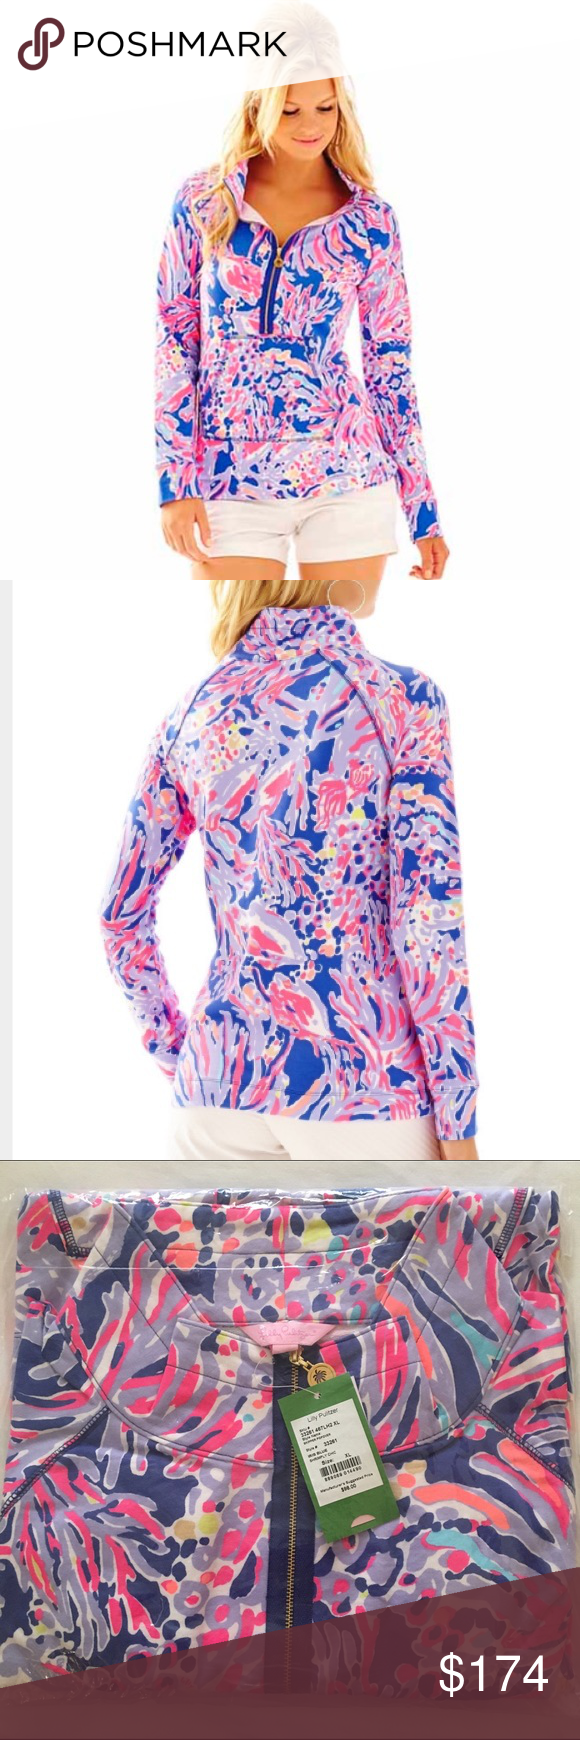 $1️⃣4️⃣5️⃣Lilly Pulitzer Shrimply Chic Popover XL Vibrant, fun, hard to find (especially in an XL), Lilly Pulitzer Shrimply Chic Popover Size XL NWT! This popover is straight from Lilly, never removed from the factory plastic or tried on! $145 shipped other places, and I will bundle there as well! No trades. Fast shipping! Thank you for looking! Lilly Pulitzer Tops Sweatshirts & Hoodies